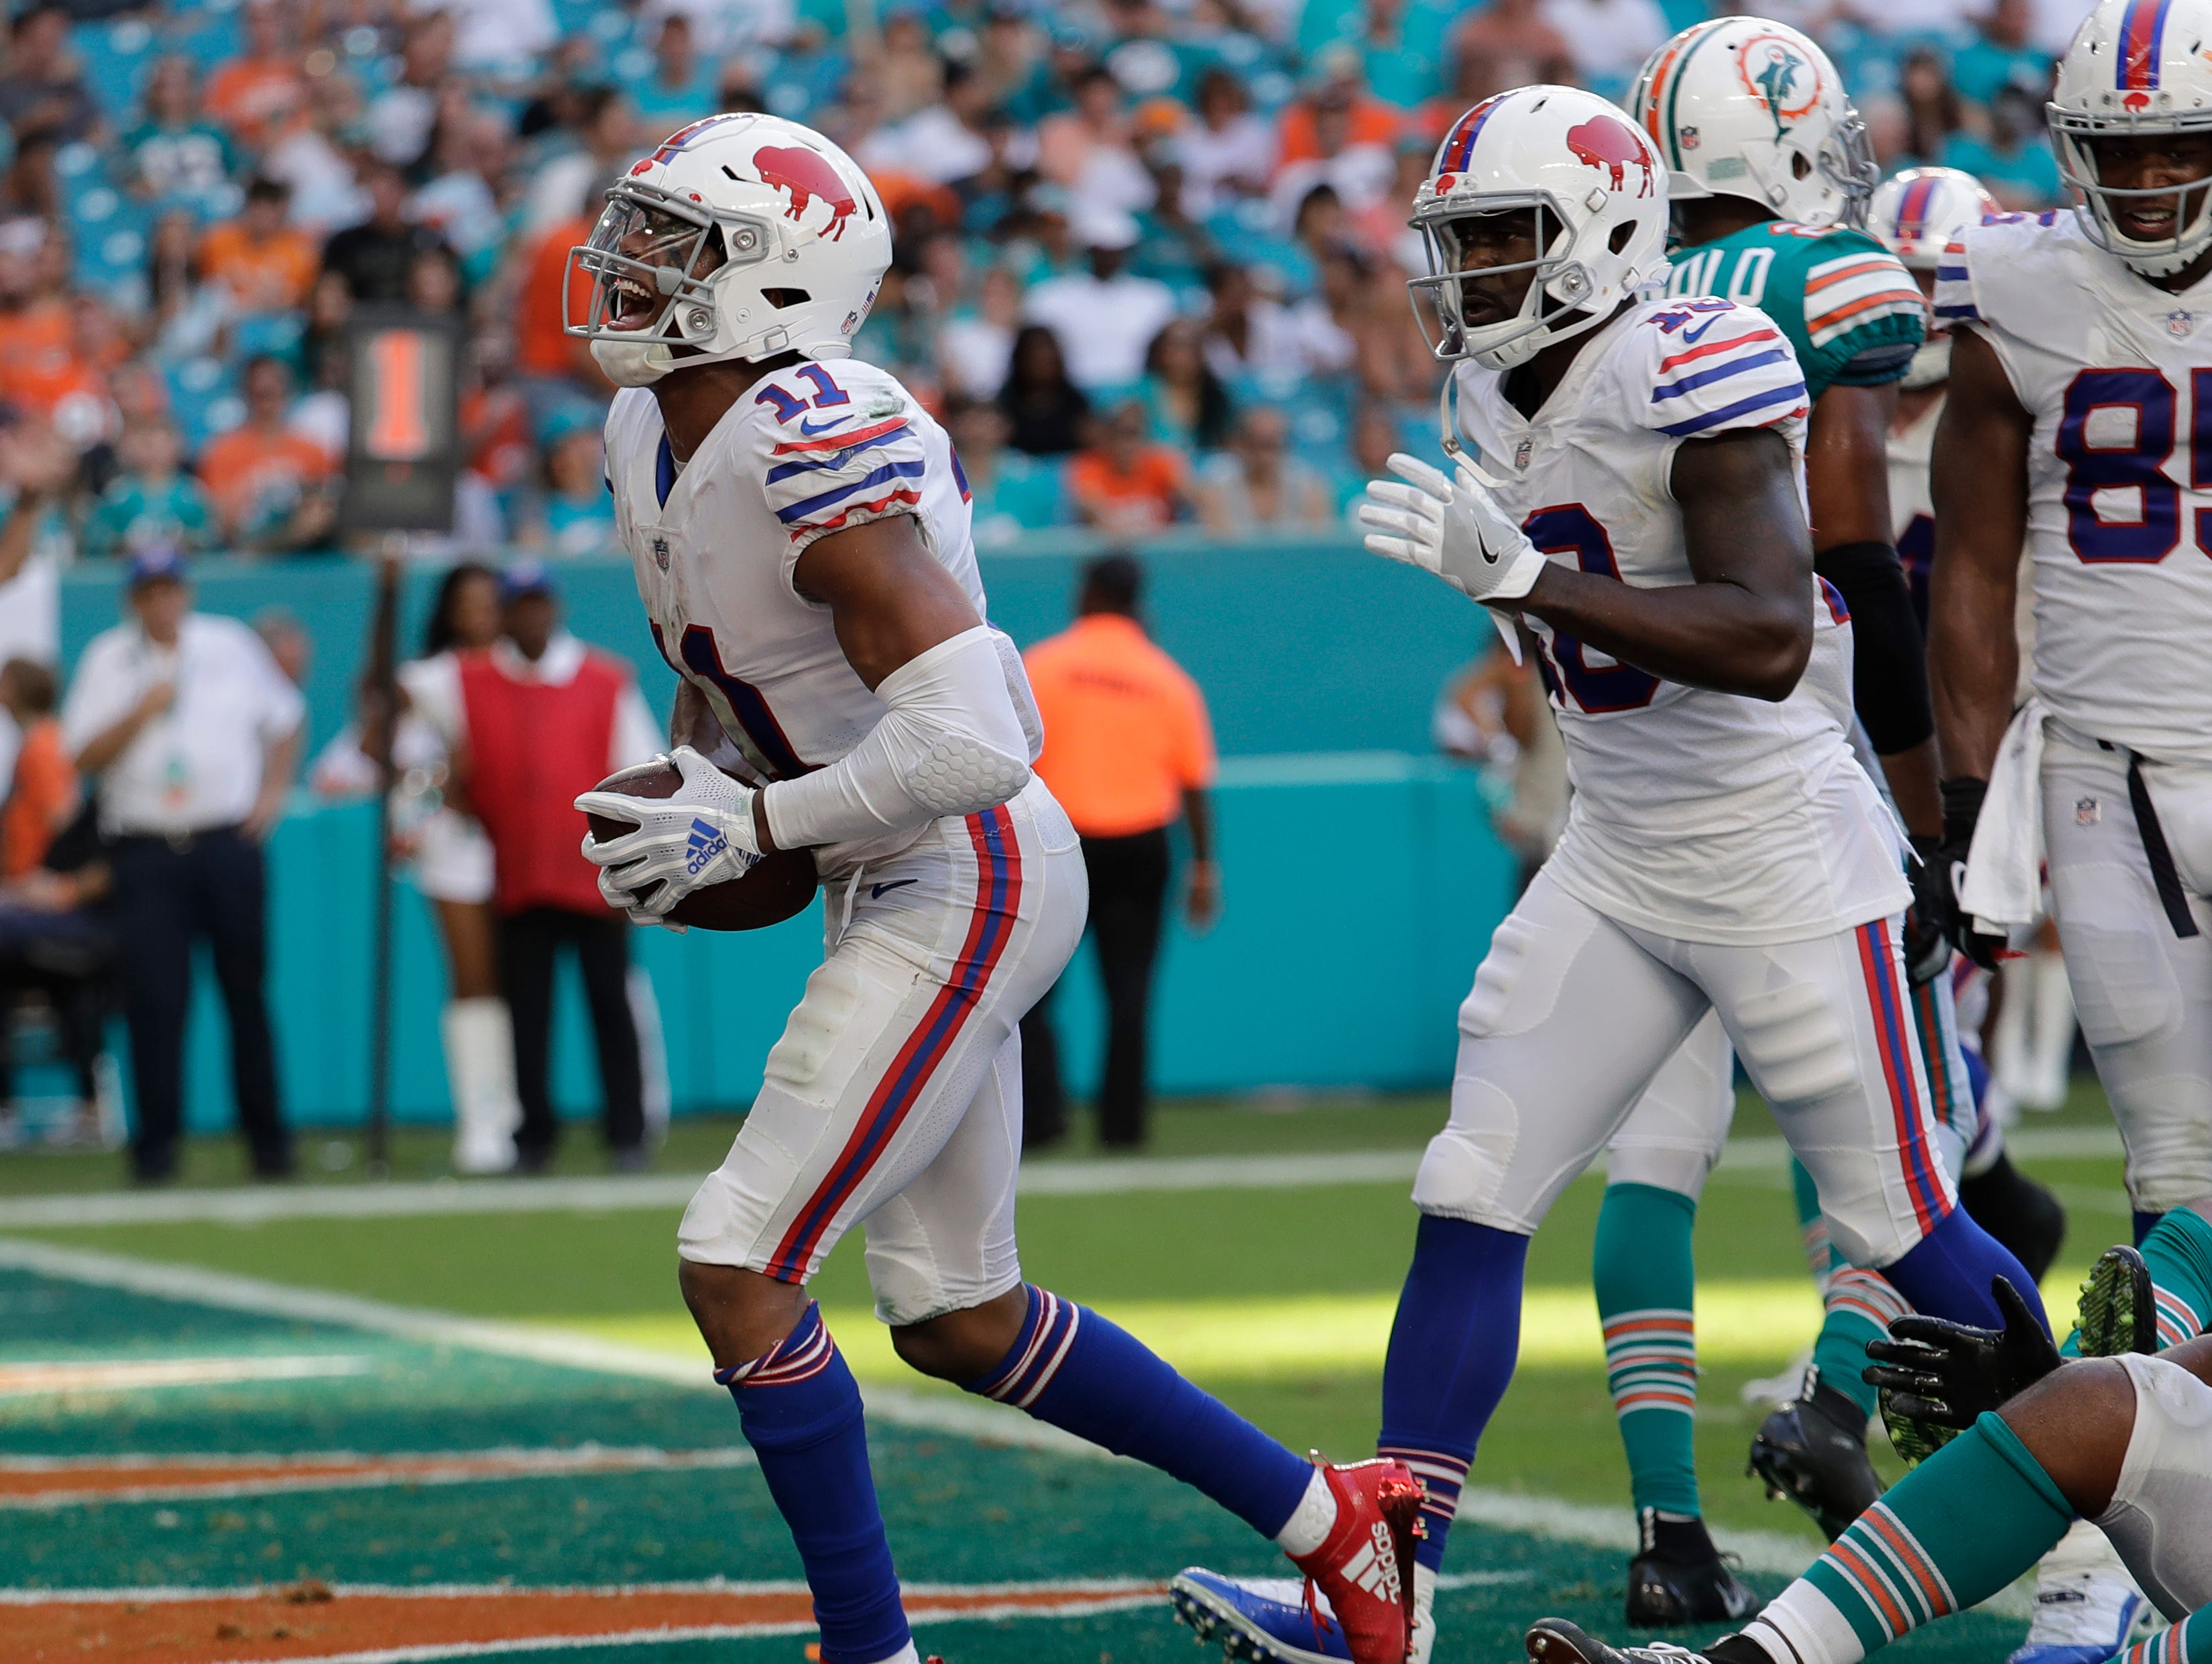 Buffalo Bills wide receiver Zay Jones (11) celebrates a two-point conversion after scoring a touchdown, during the second half of an NFL football game against the Miami Dolphins, Sunday, Dec. 2, 2018, in Miami Gardens, Fla. (AP Photo/Lynne Sladky)